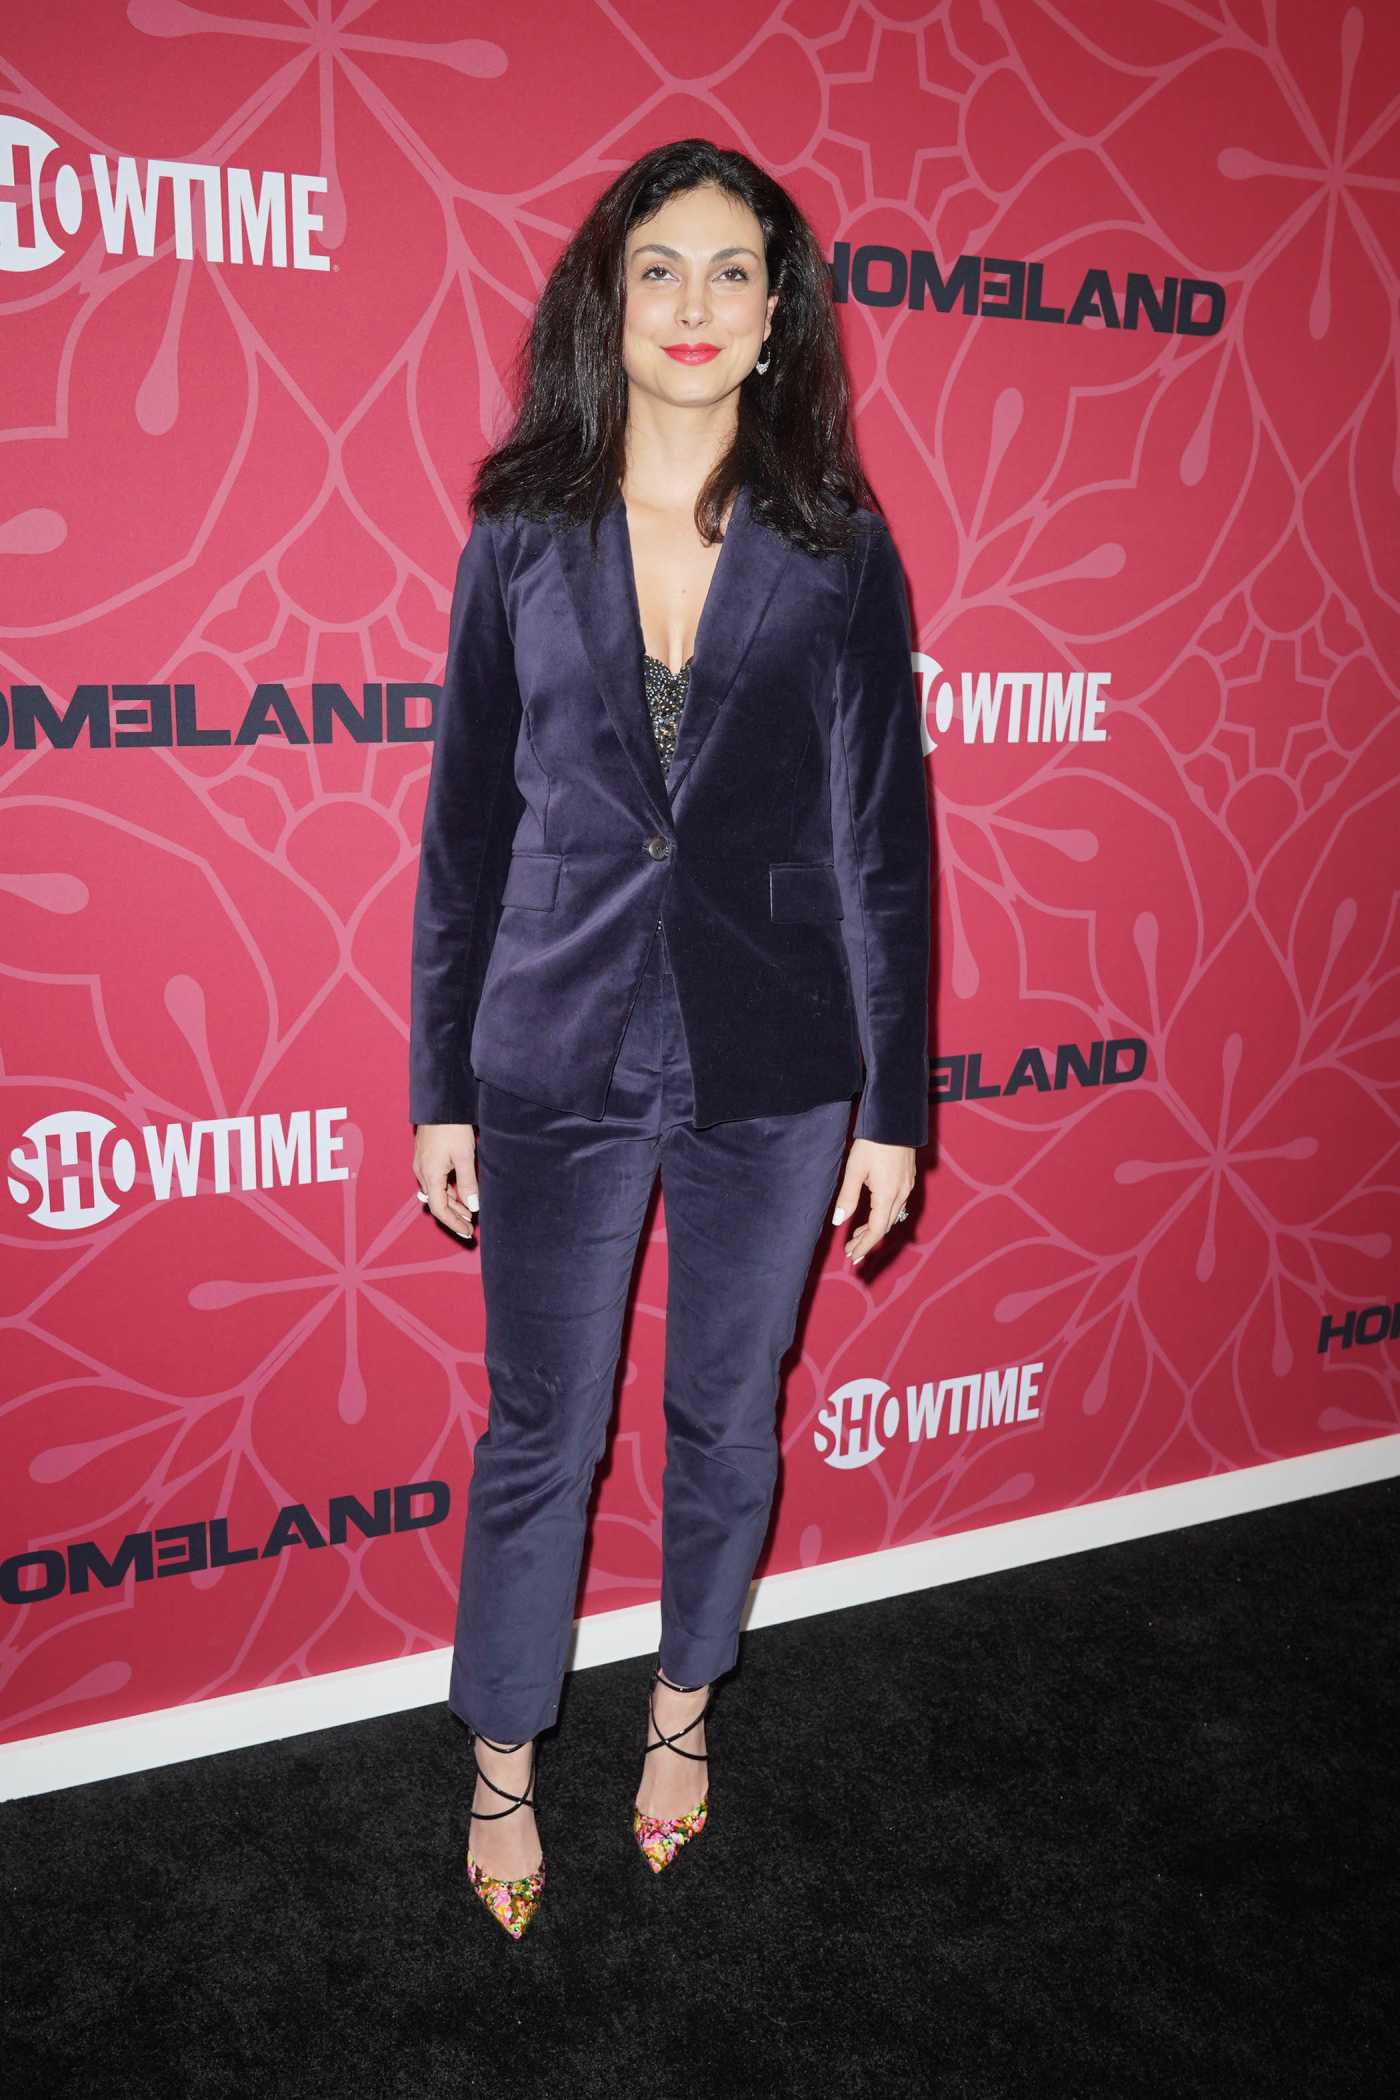 Morena Baccarin Attends the Homeland Season 8 Premiere in New York 02/04/2020